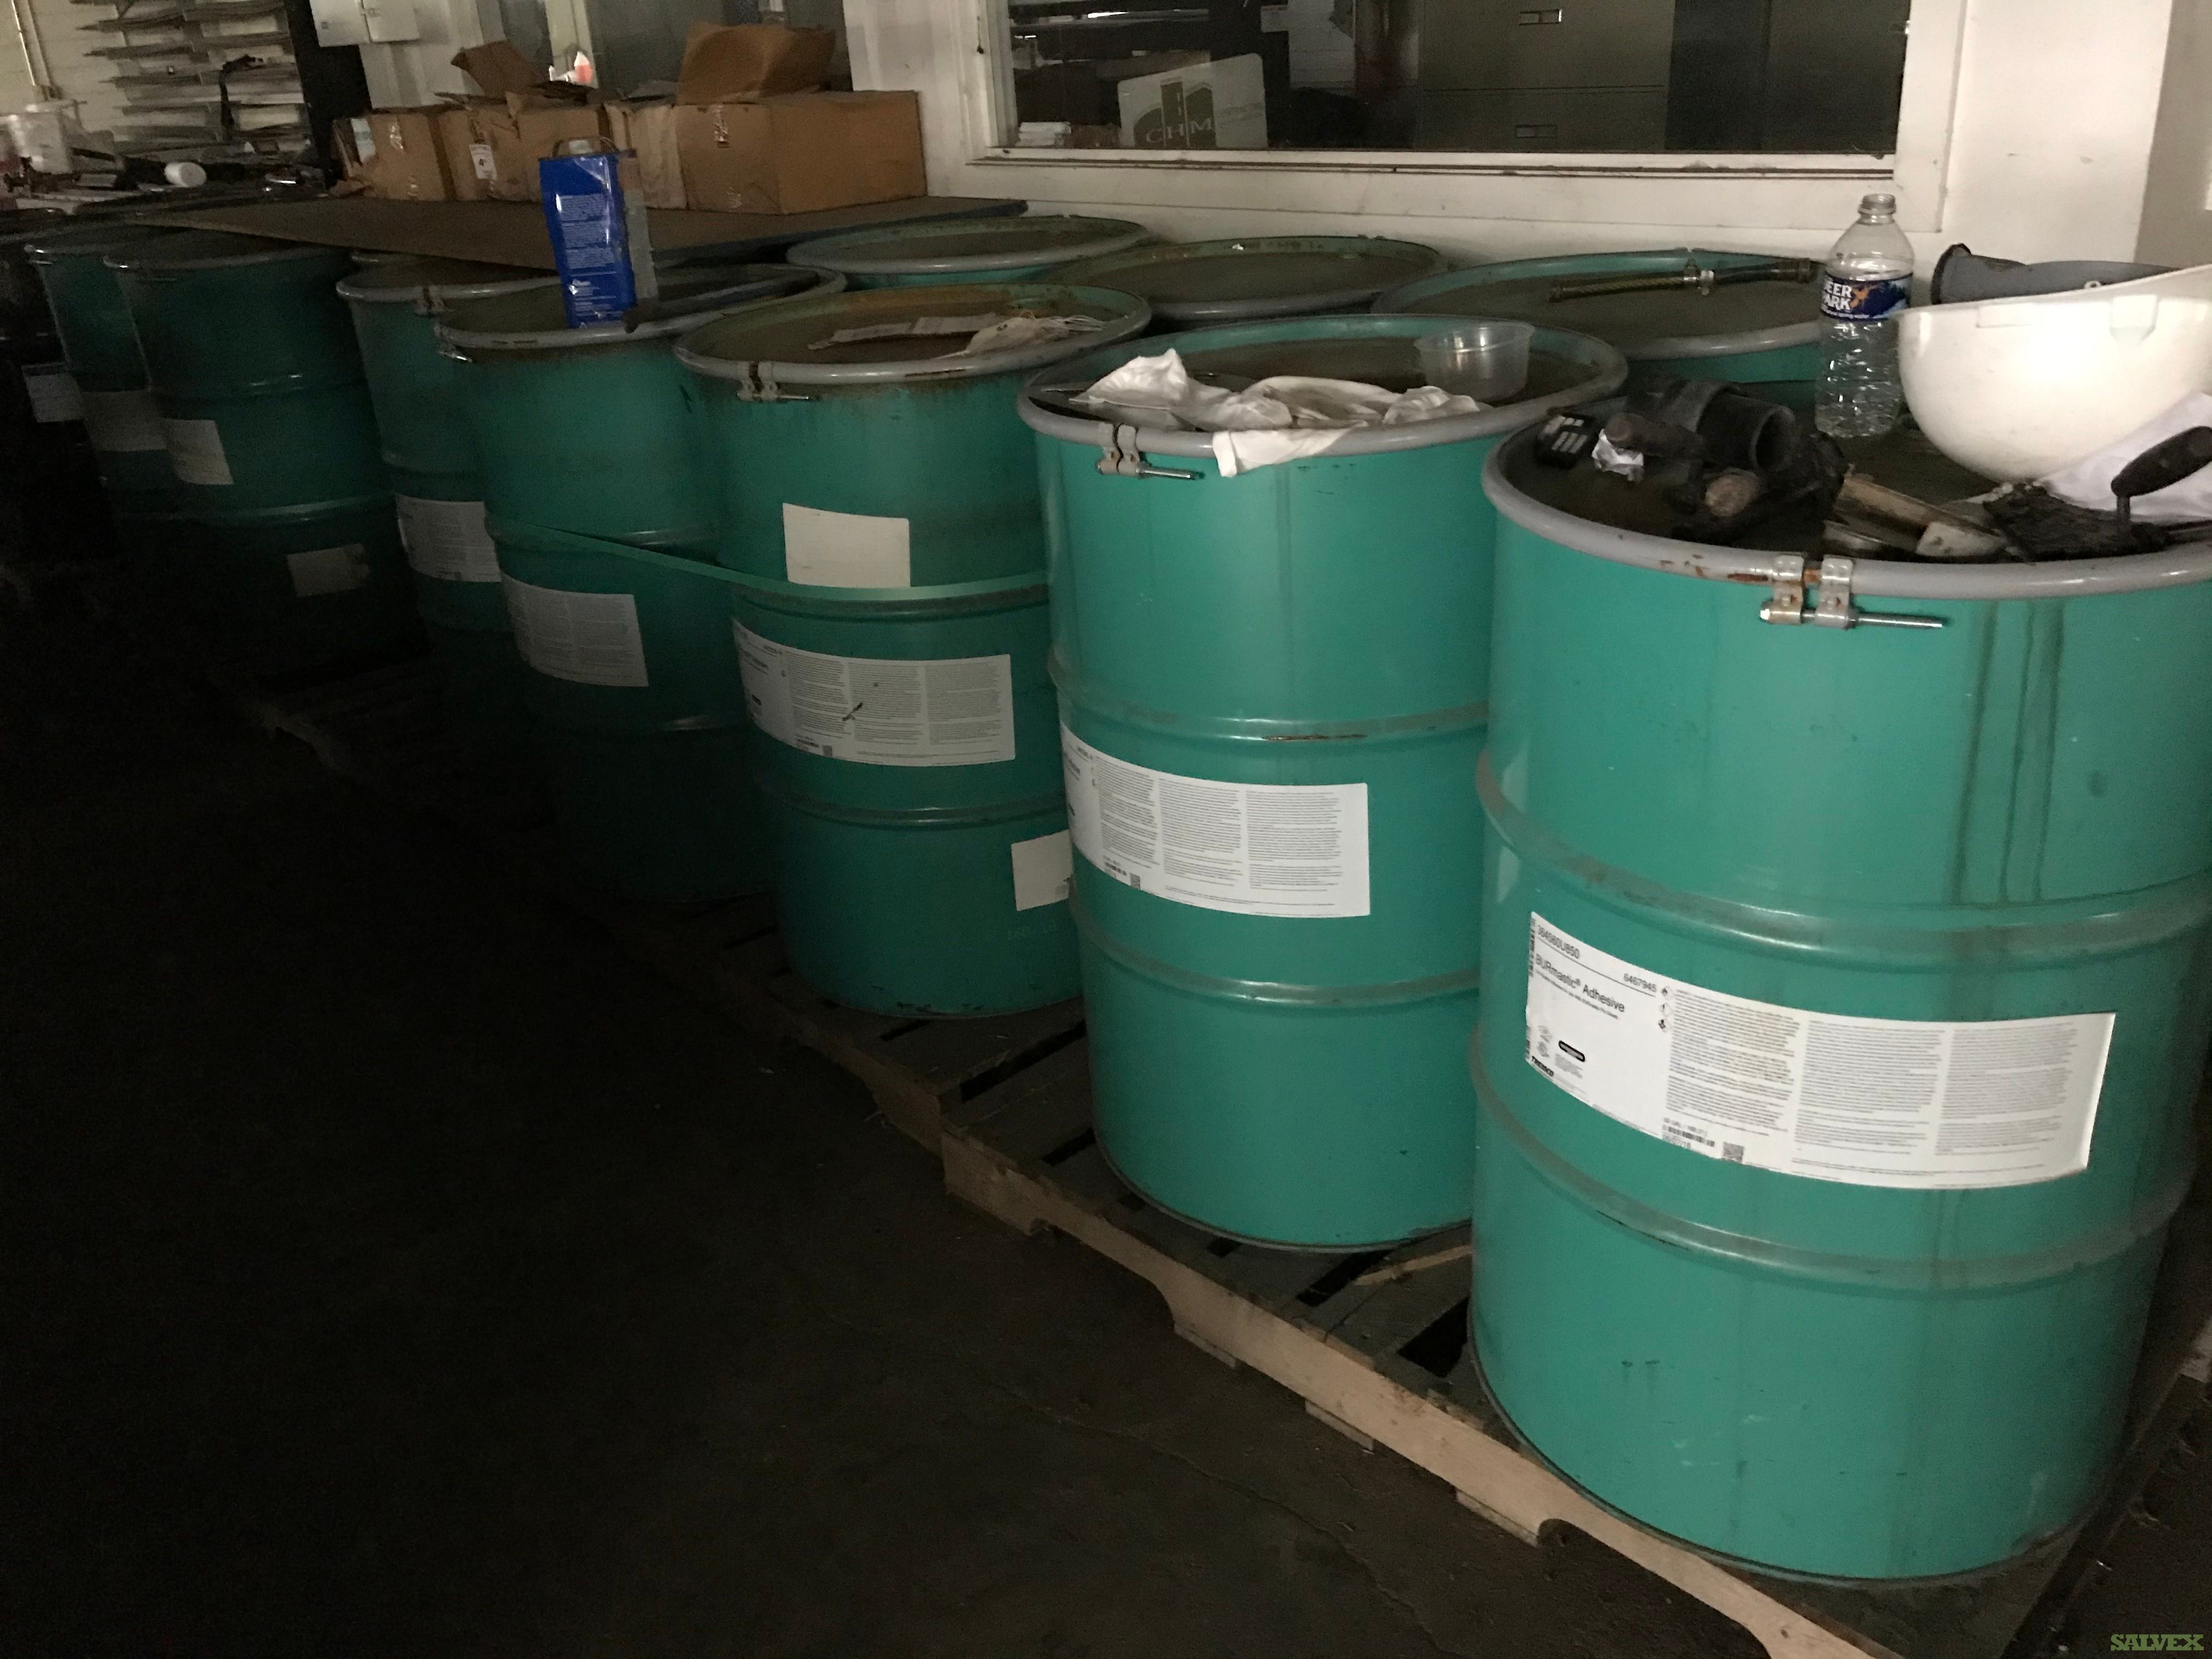 Tremco Burmastic Roofing Adhesive 50 Gallon Drums (34 Drums) in Pennsylvania